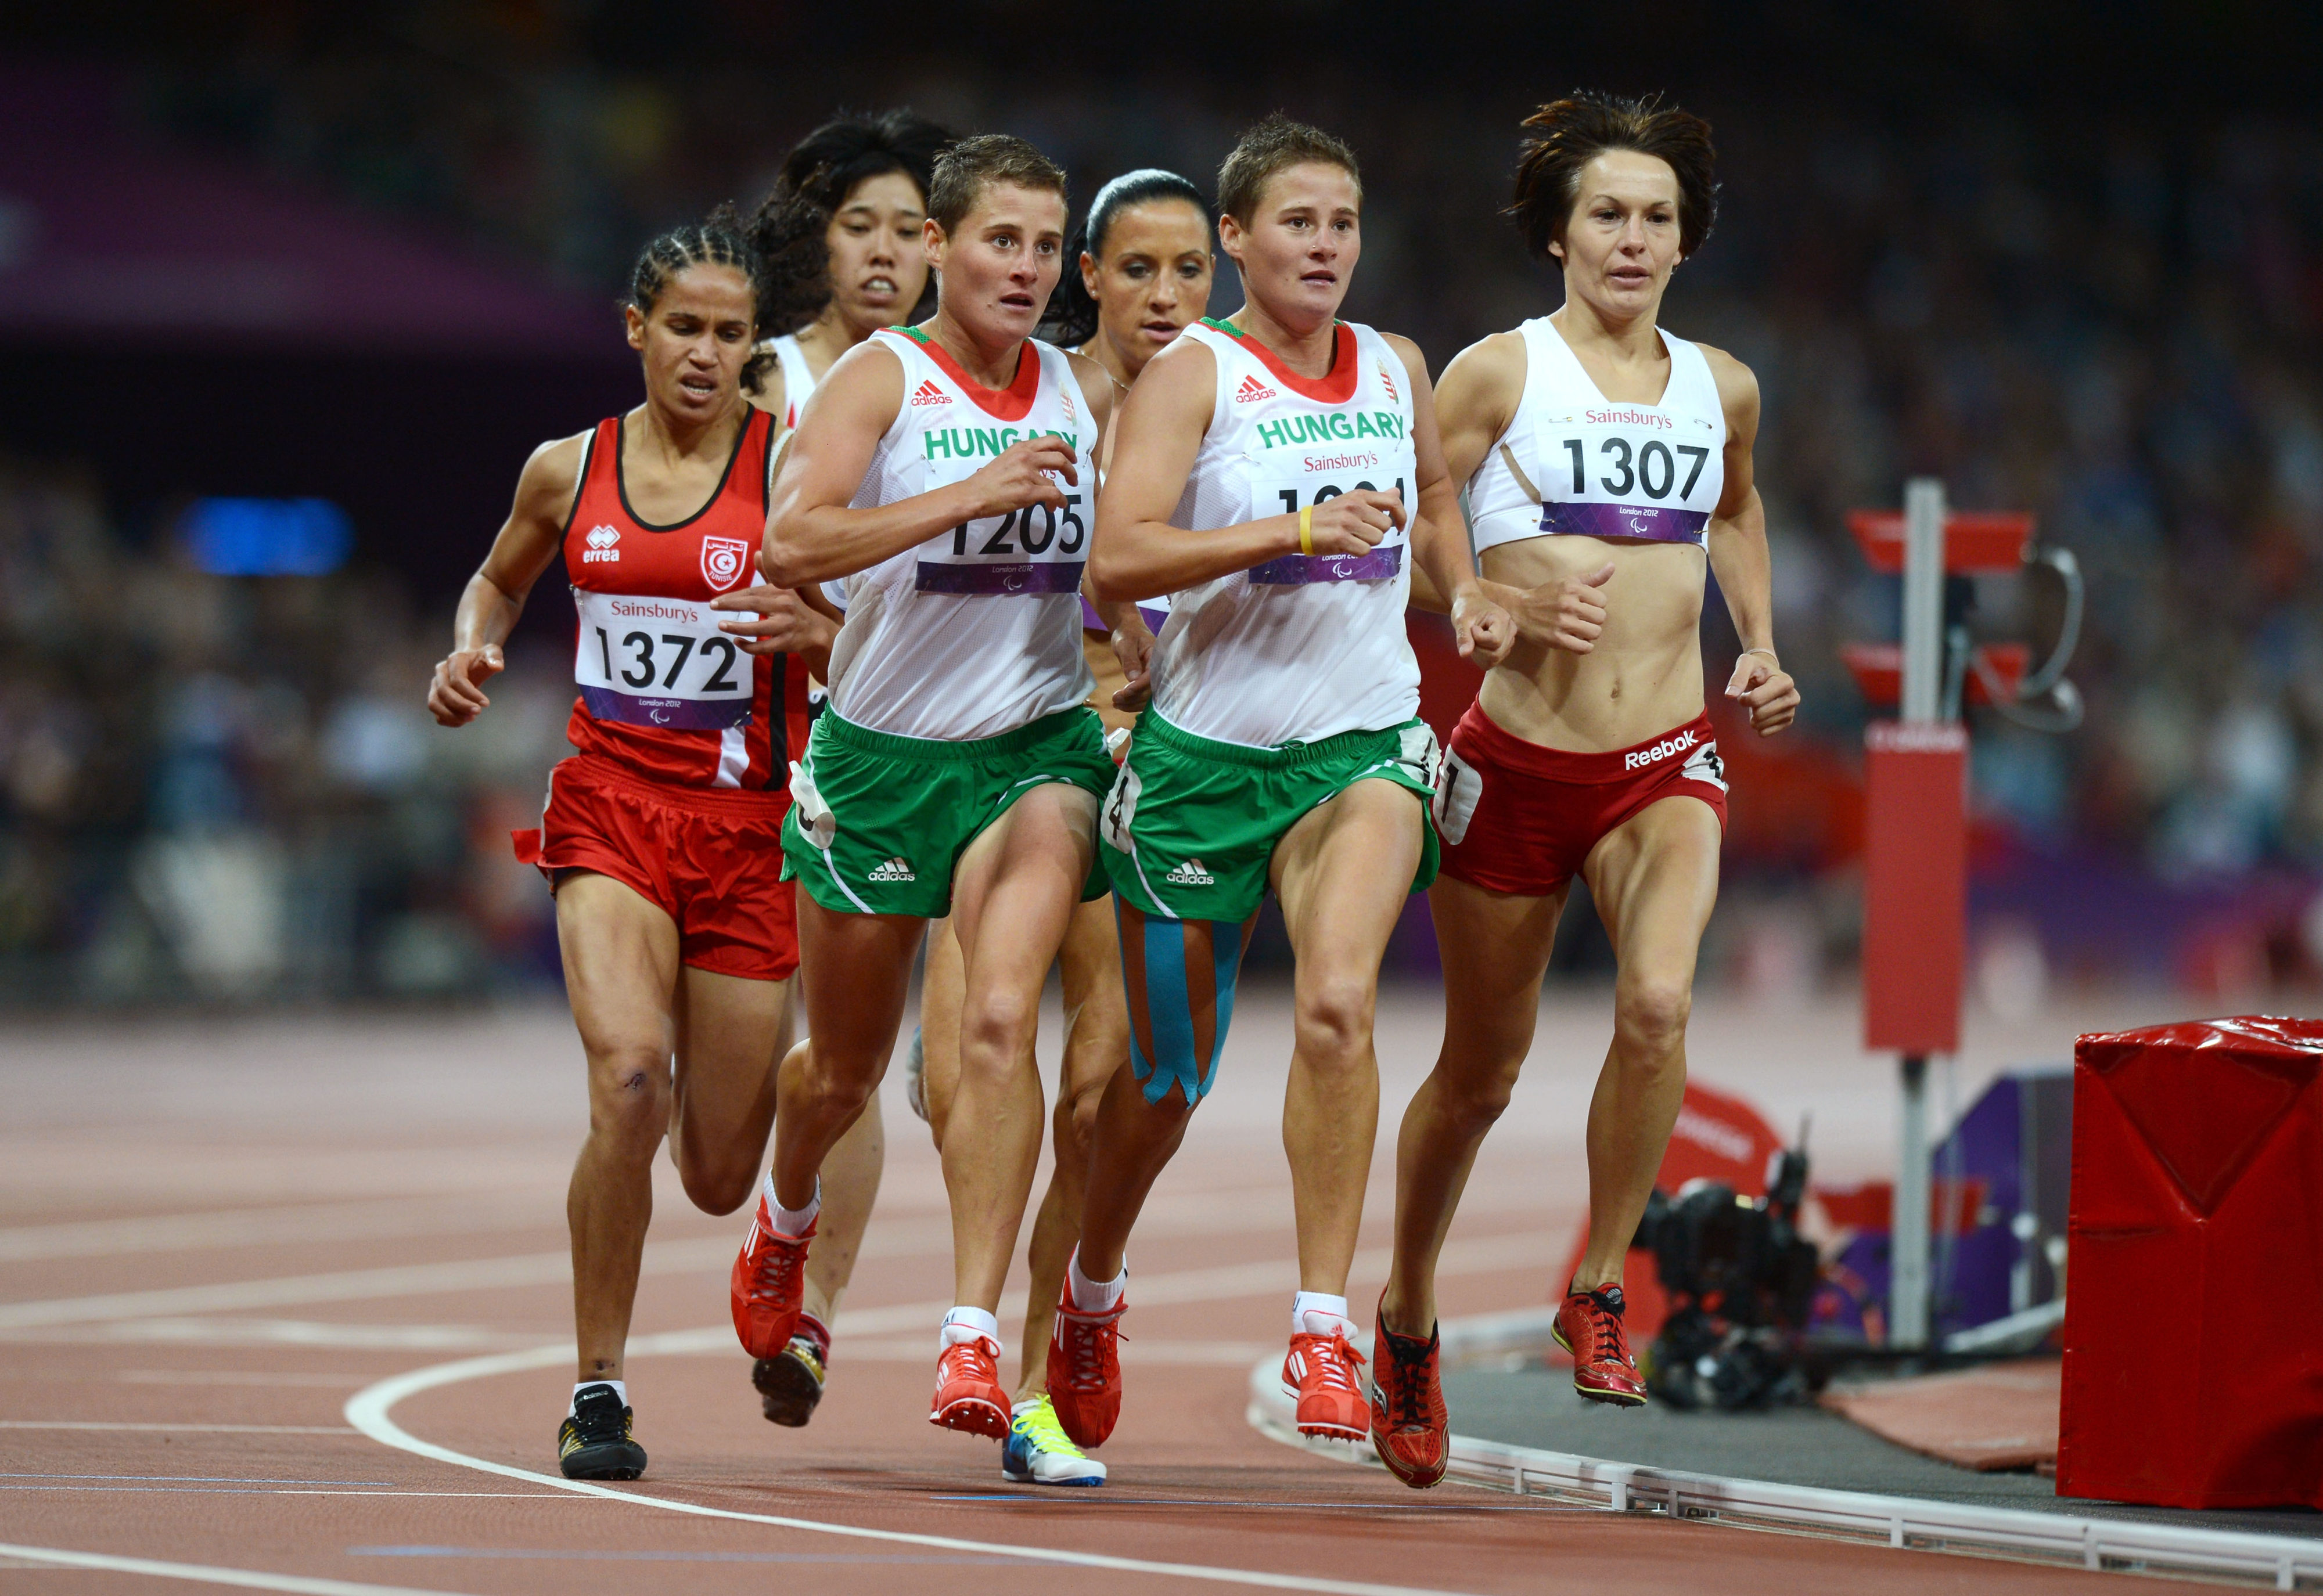 A group of athletes running